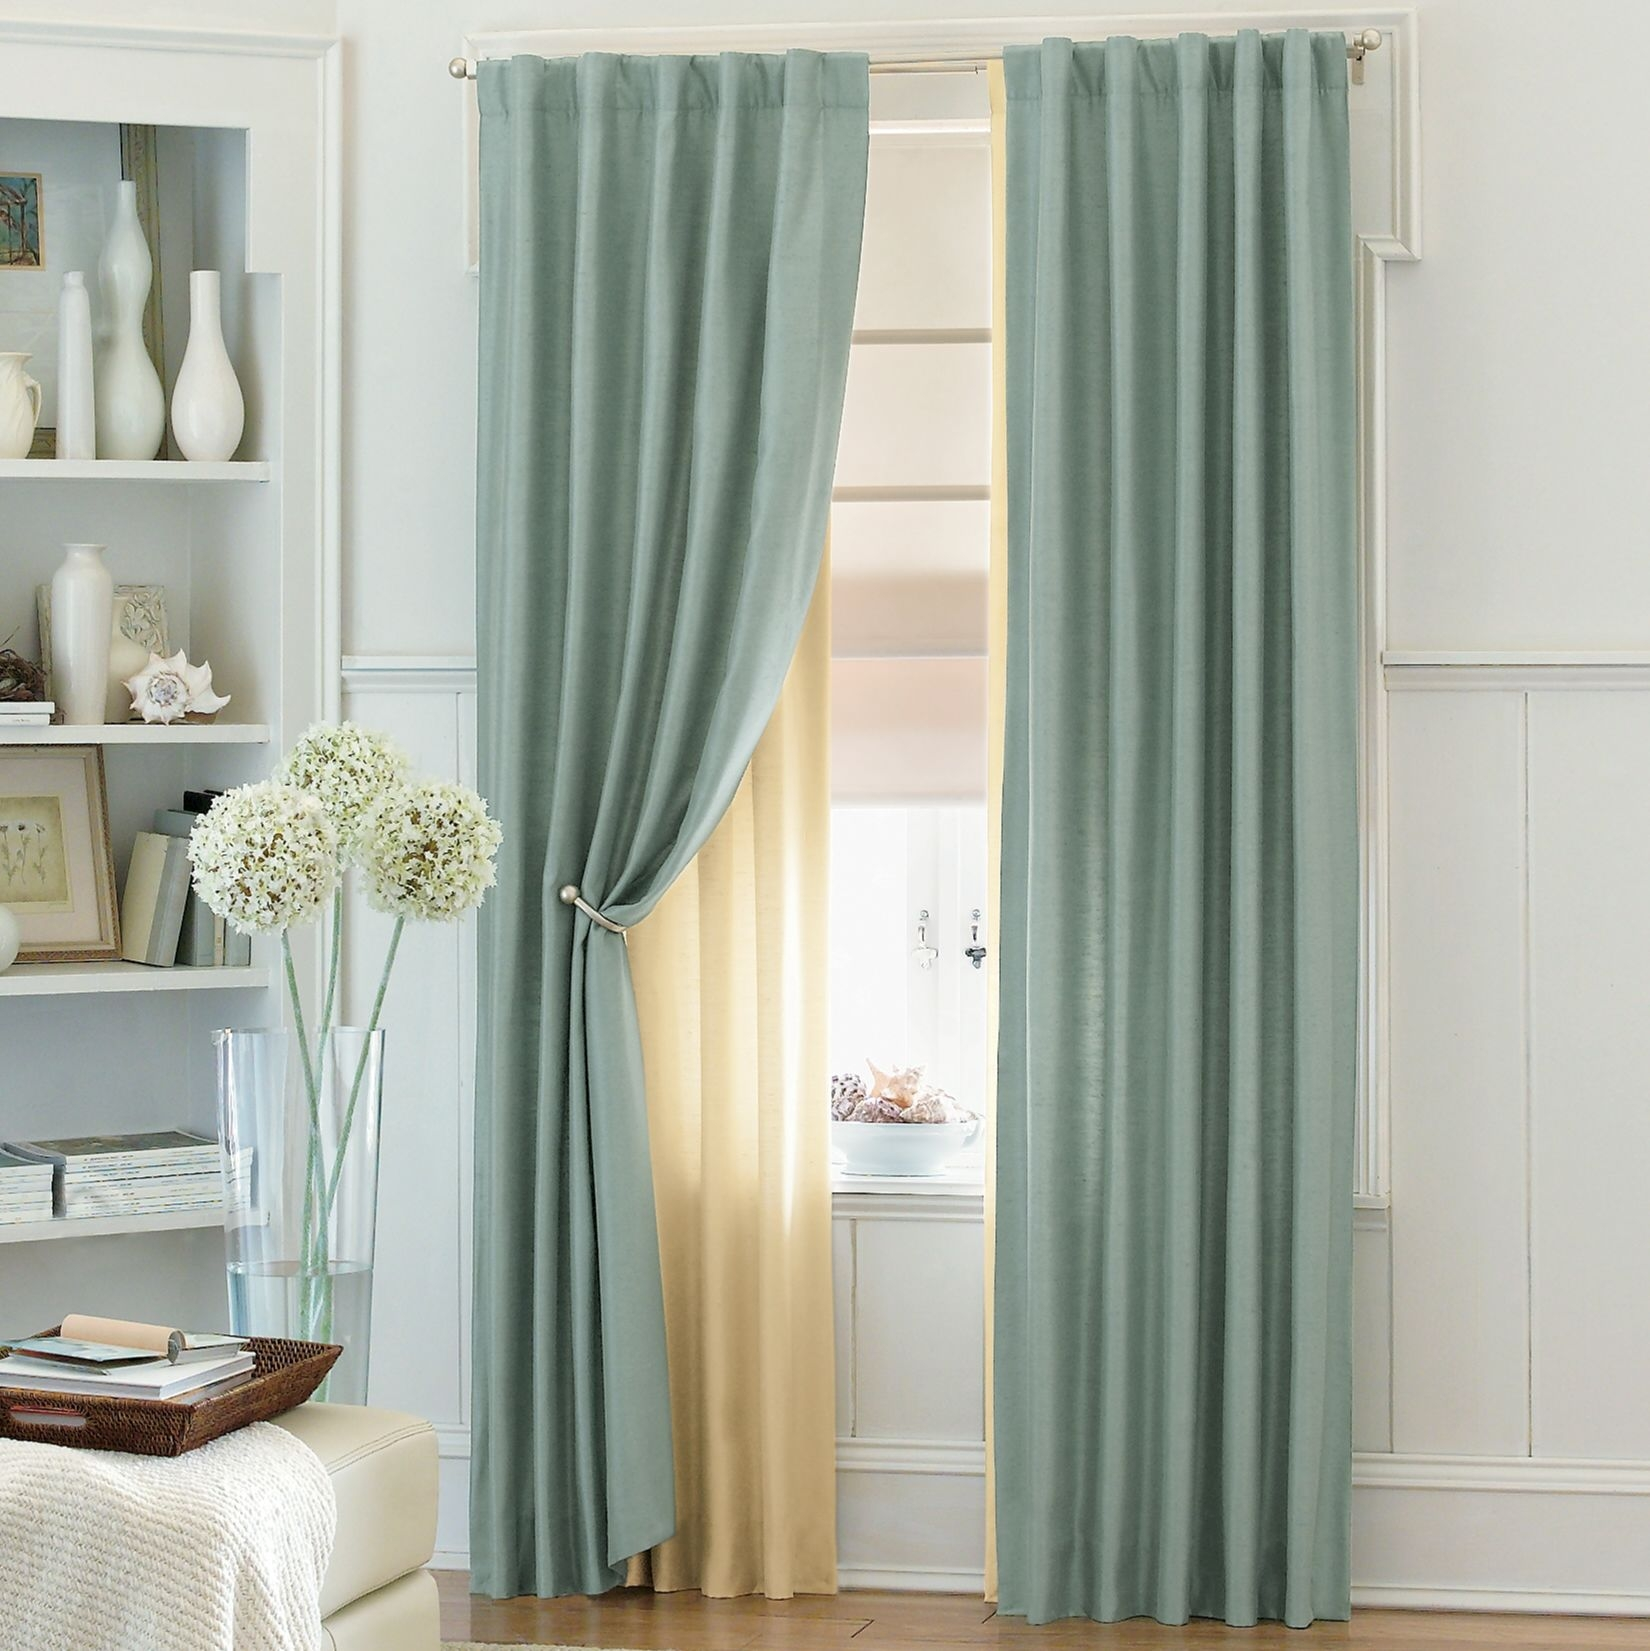 Curtains Elegant Window Curtains Inspiration Awe Windows Curtains Pertaining To Curtains Windows (Image 12 of 25)